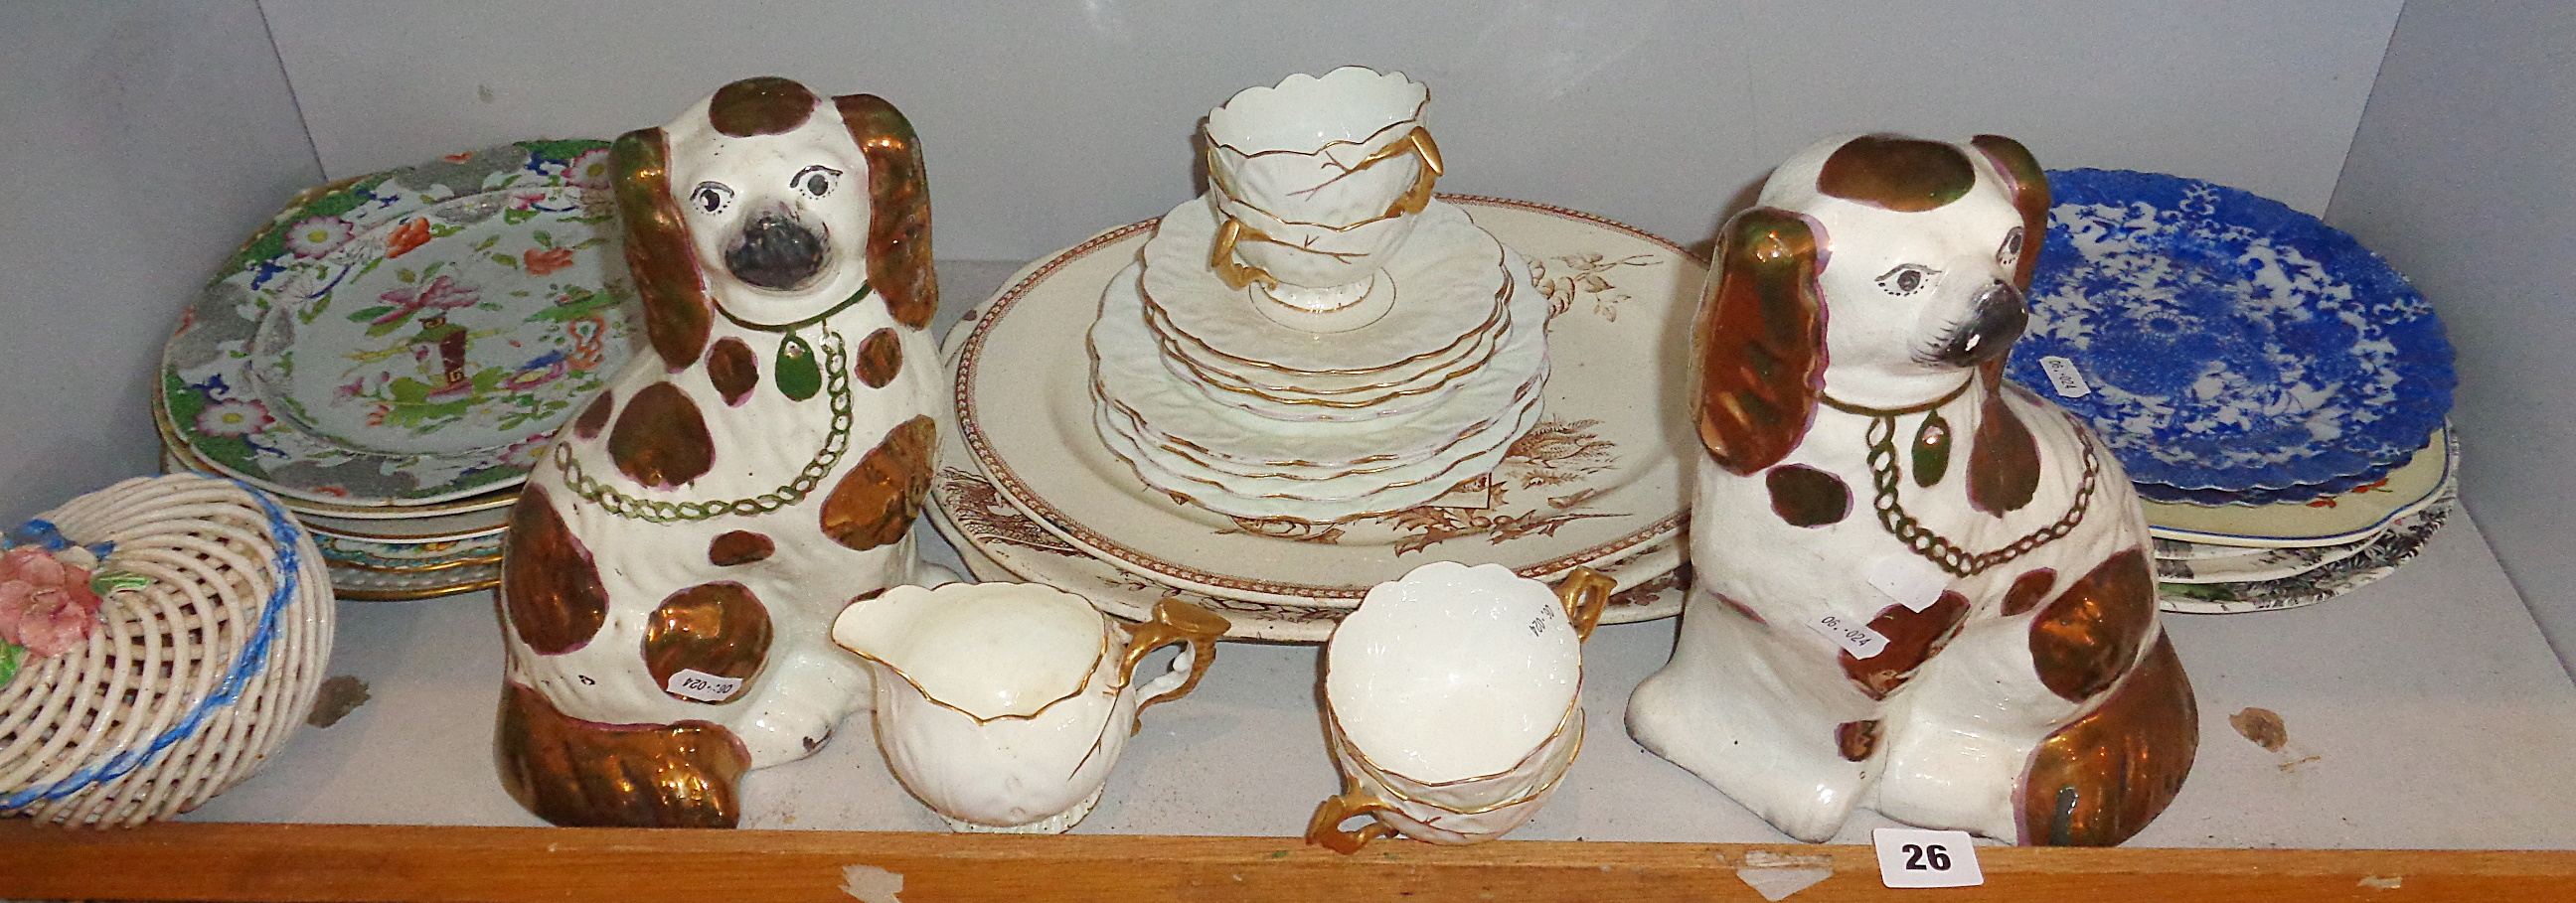 Lot 26 - Pair of Staffordshire Spaniels and a pair of Japanese blue and white plates and other assorted